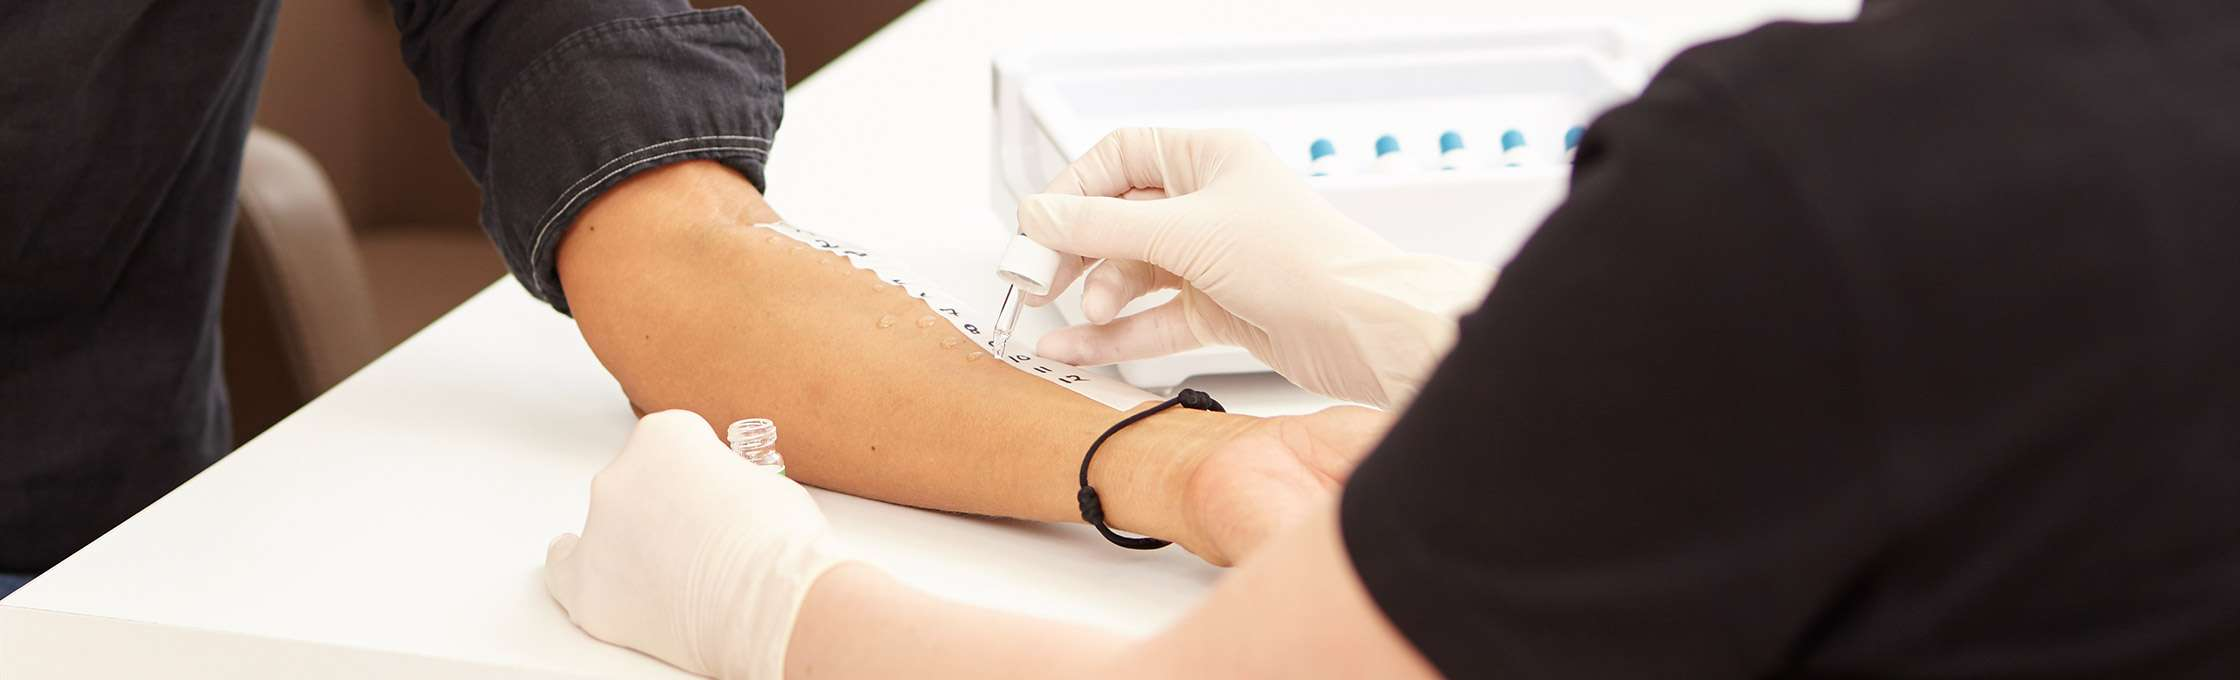 A patient at the allergy test. A hand of the female doctor dressed in gloves dribbles an allergen liquid on the patient's skin. The reactions of the skin enables the diagnosis of allergies and the decision about the treatment methods.